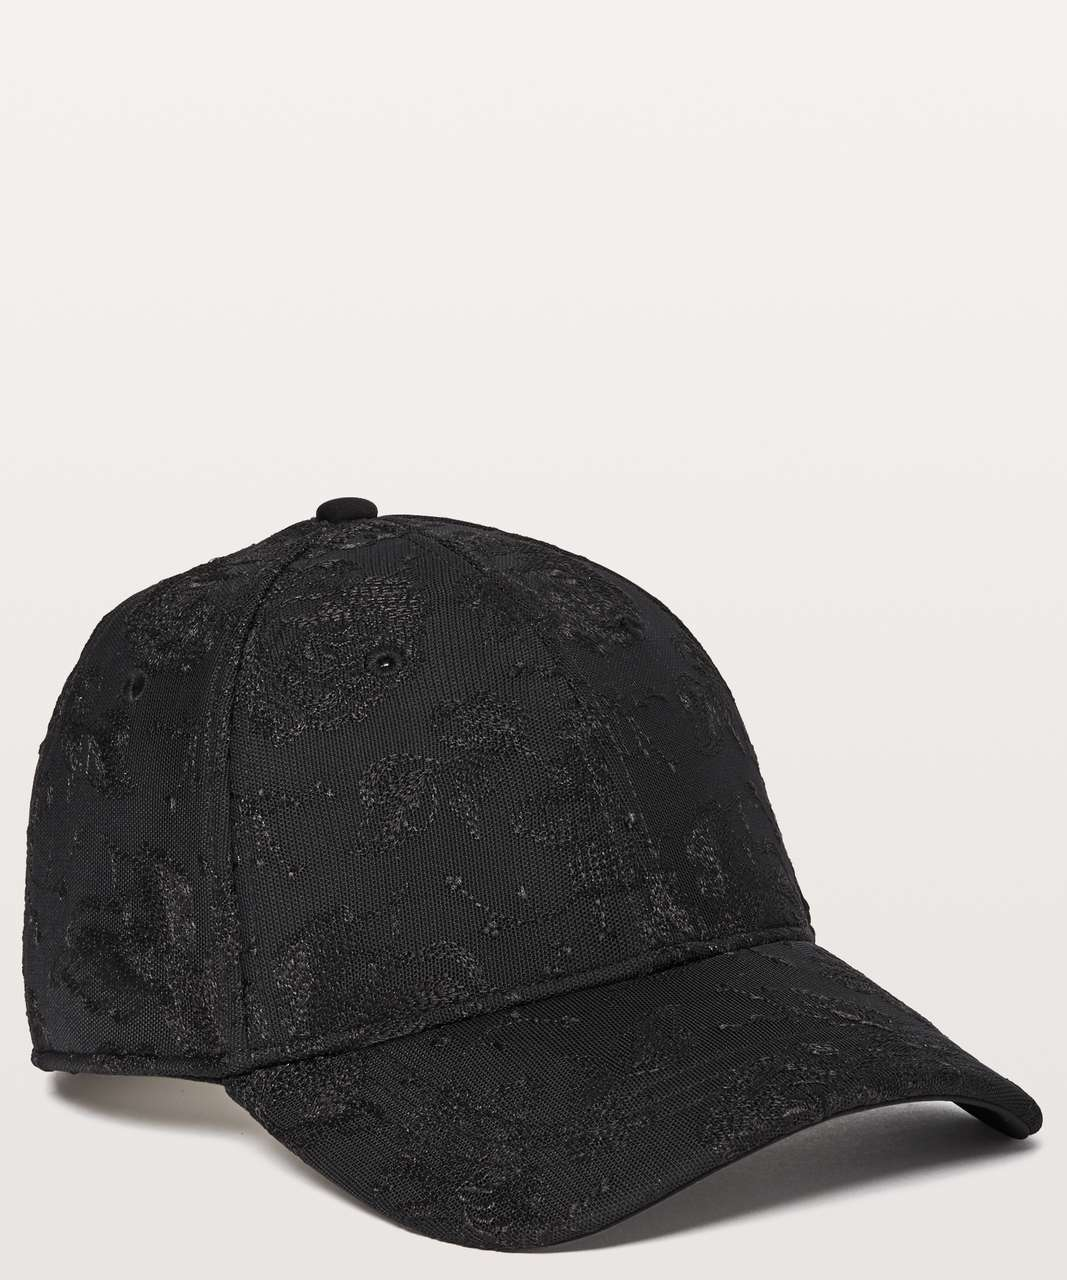 Lululemon Baller Hat *Lace - Black